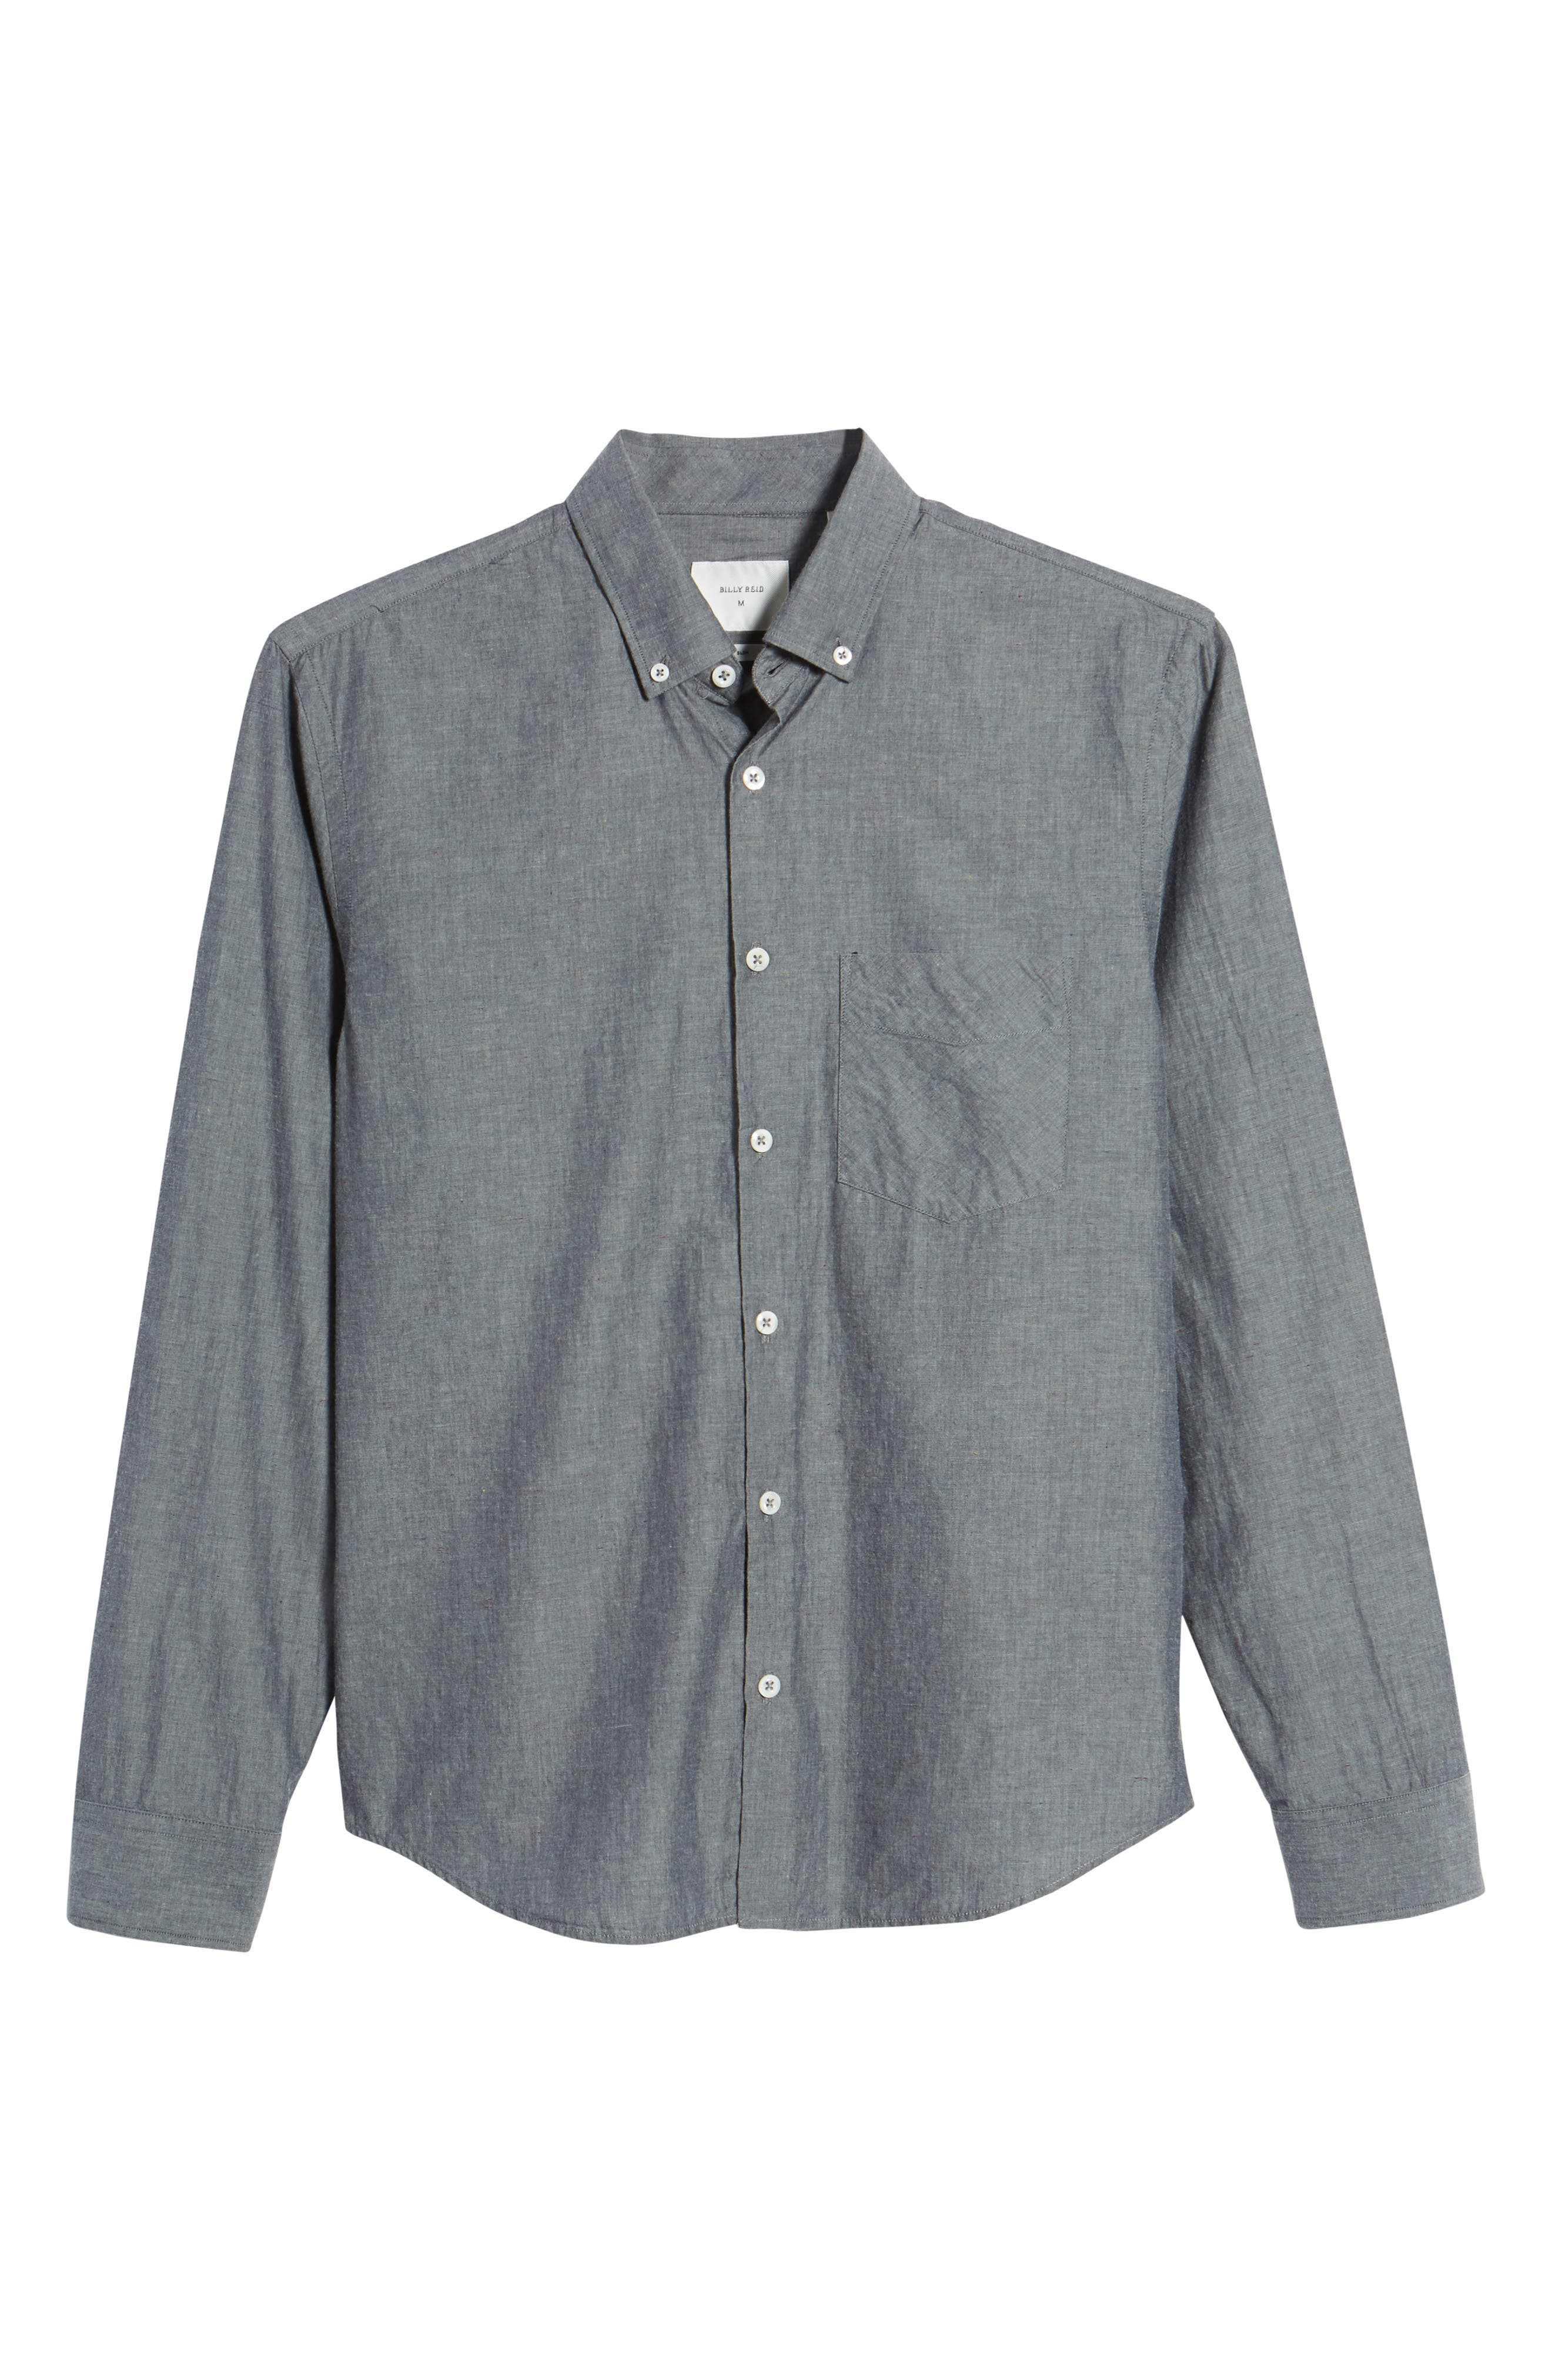 Kirby Slim Fit Solid Sport Shirt,                             Alternate thumbnail 6, color,                             400